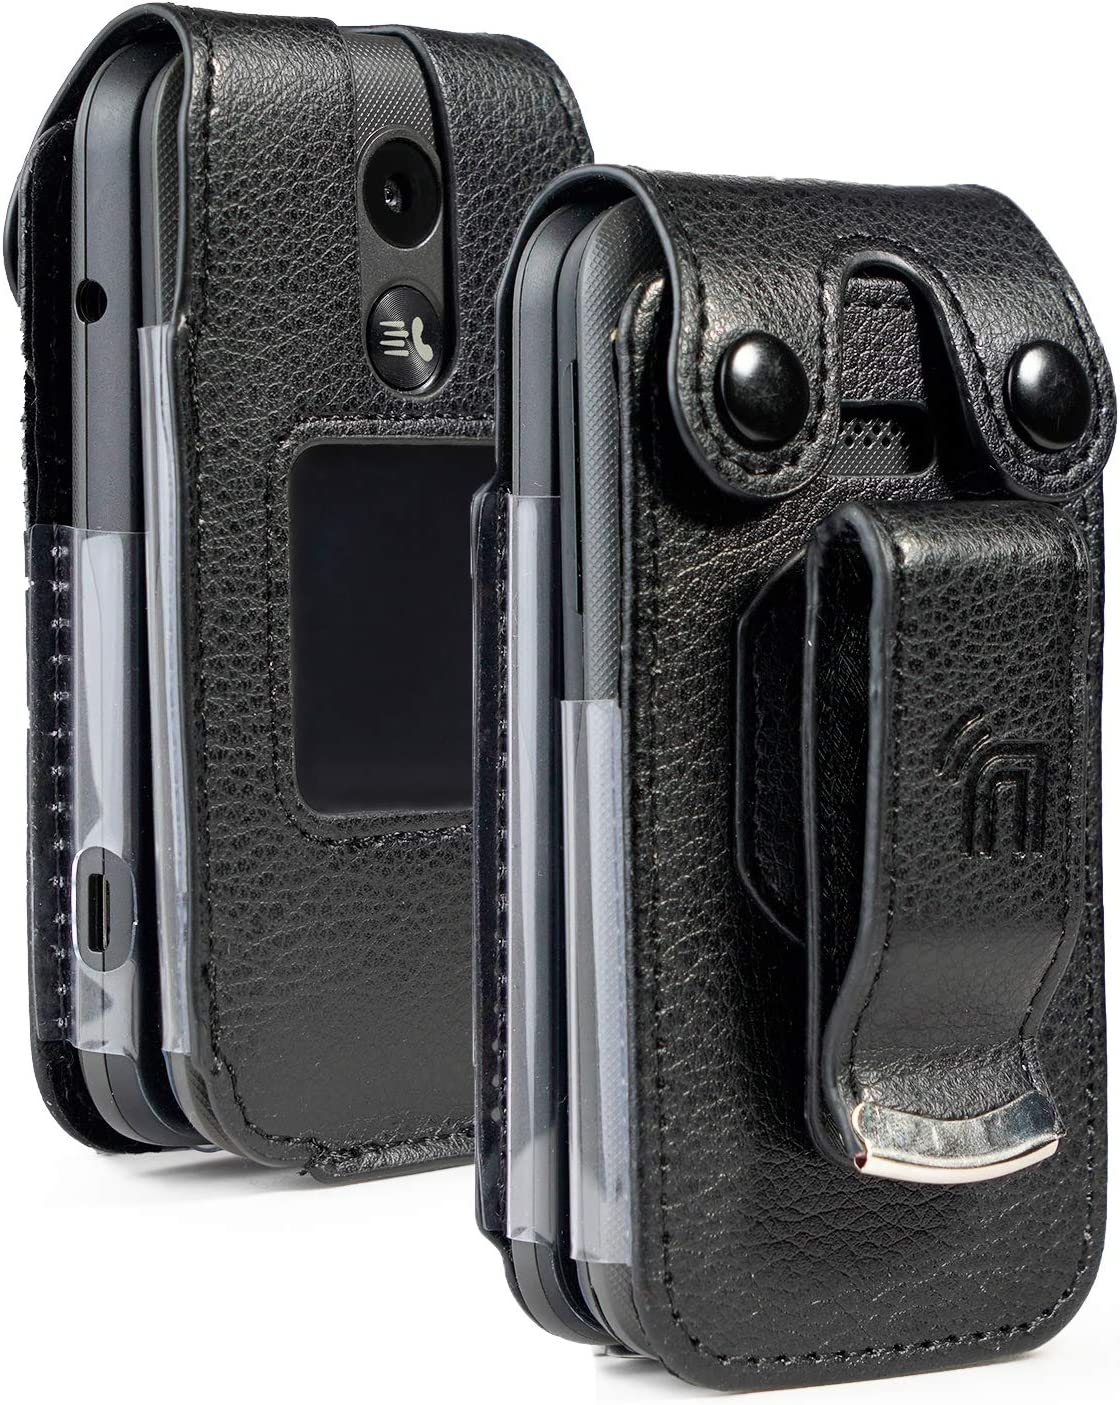 Case for MyFlip-2, Nakedcellphone [Black Vegan Leather] Form-Fit Cover with [Built-in Screen Protection] and [Metal Belt Clip] for Alcatel MyFlip 2 Phone (A406DL), TCL My Flip 2